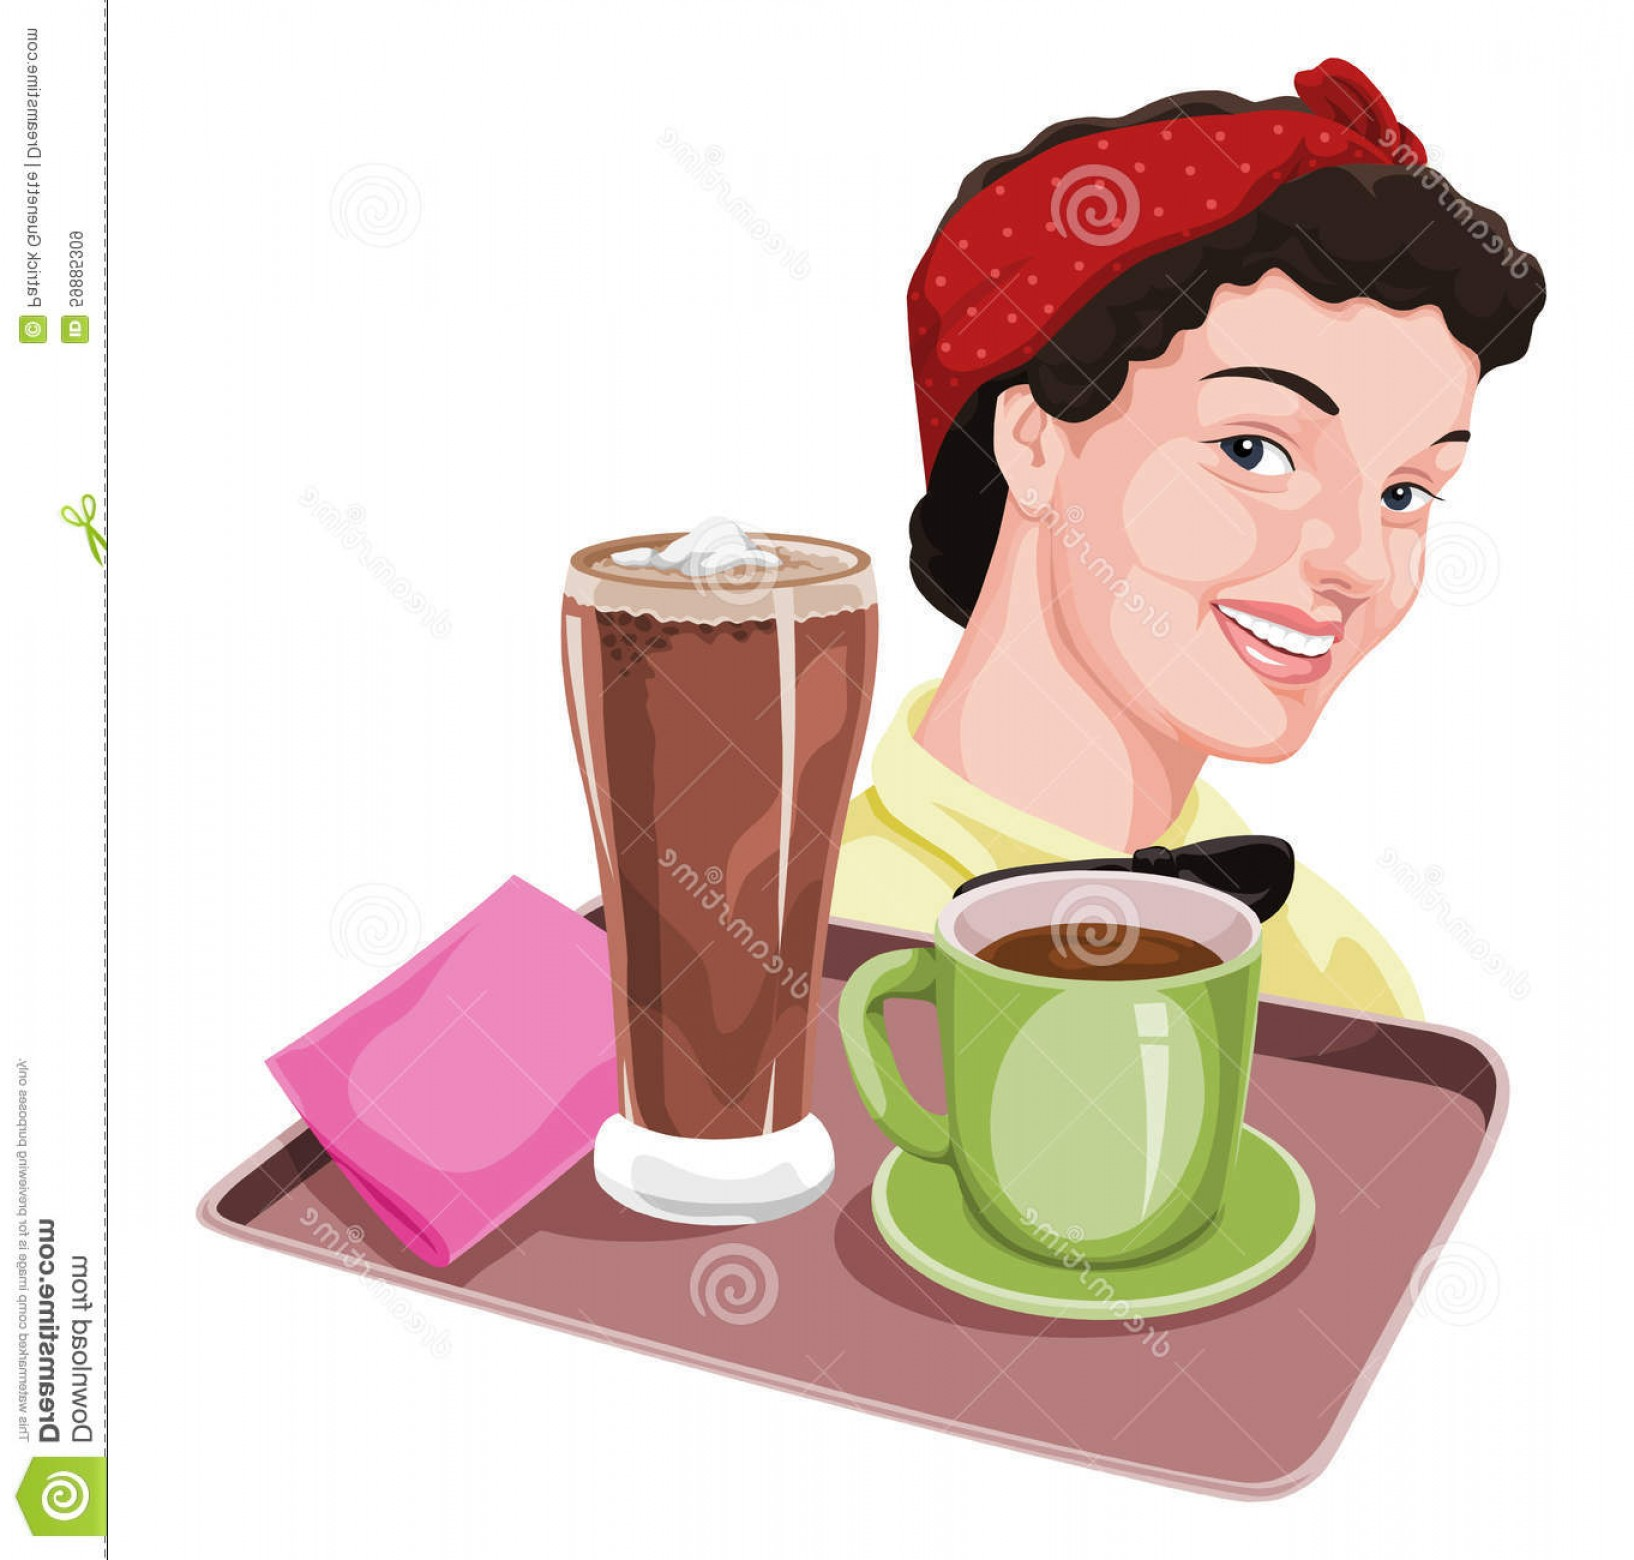 Vector Waiter Coffee: Stock Illustration Vector Waitress Holding Coffee Milkshake Tray Illustration Image